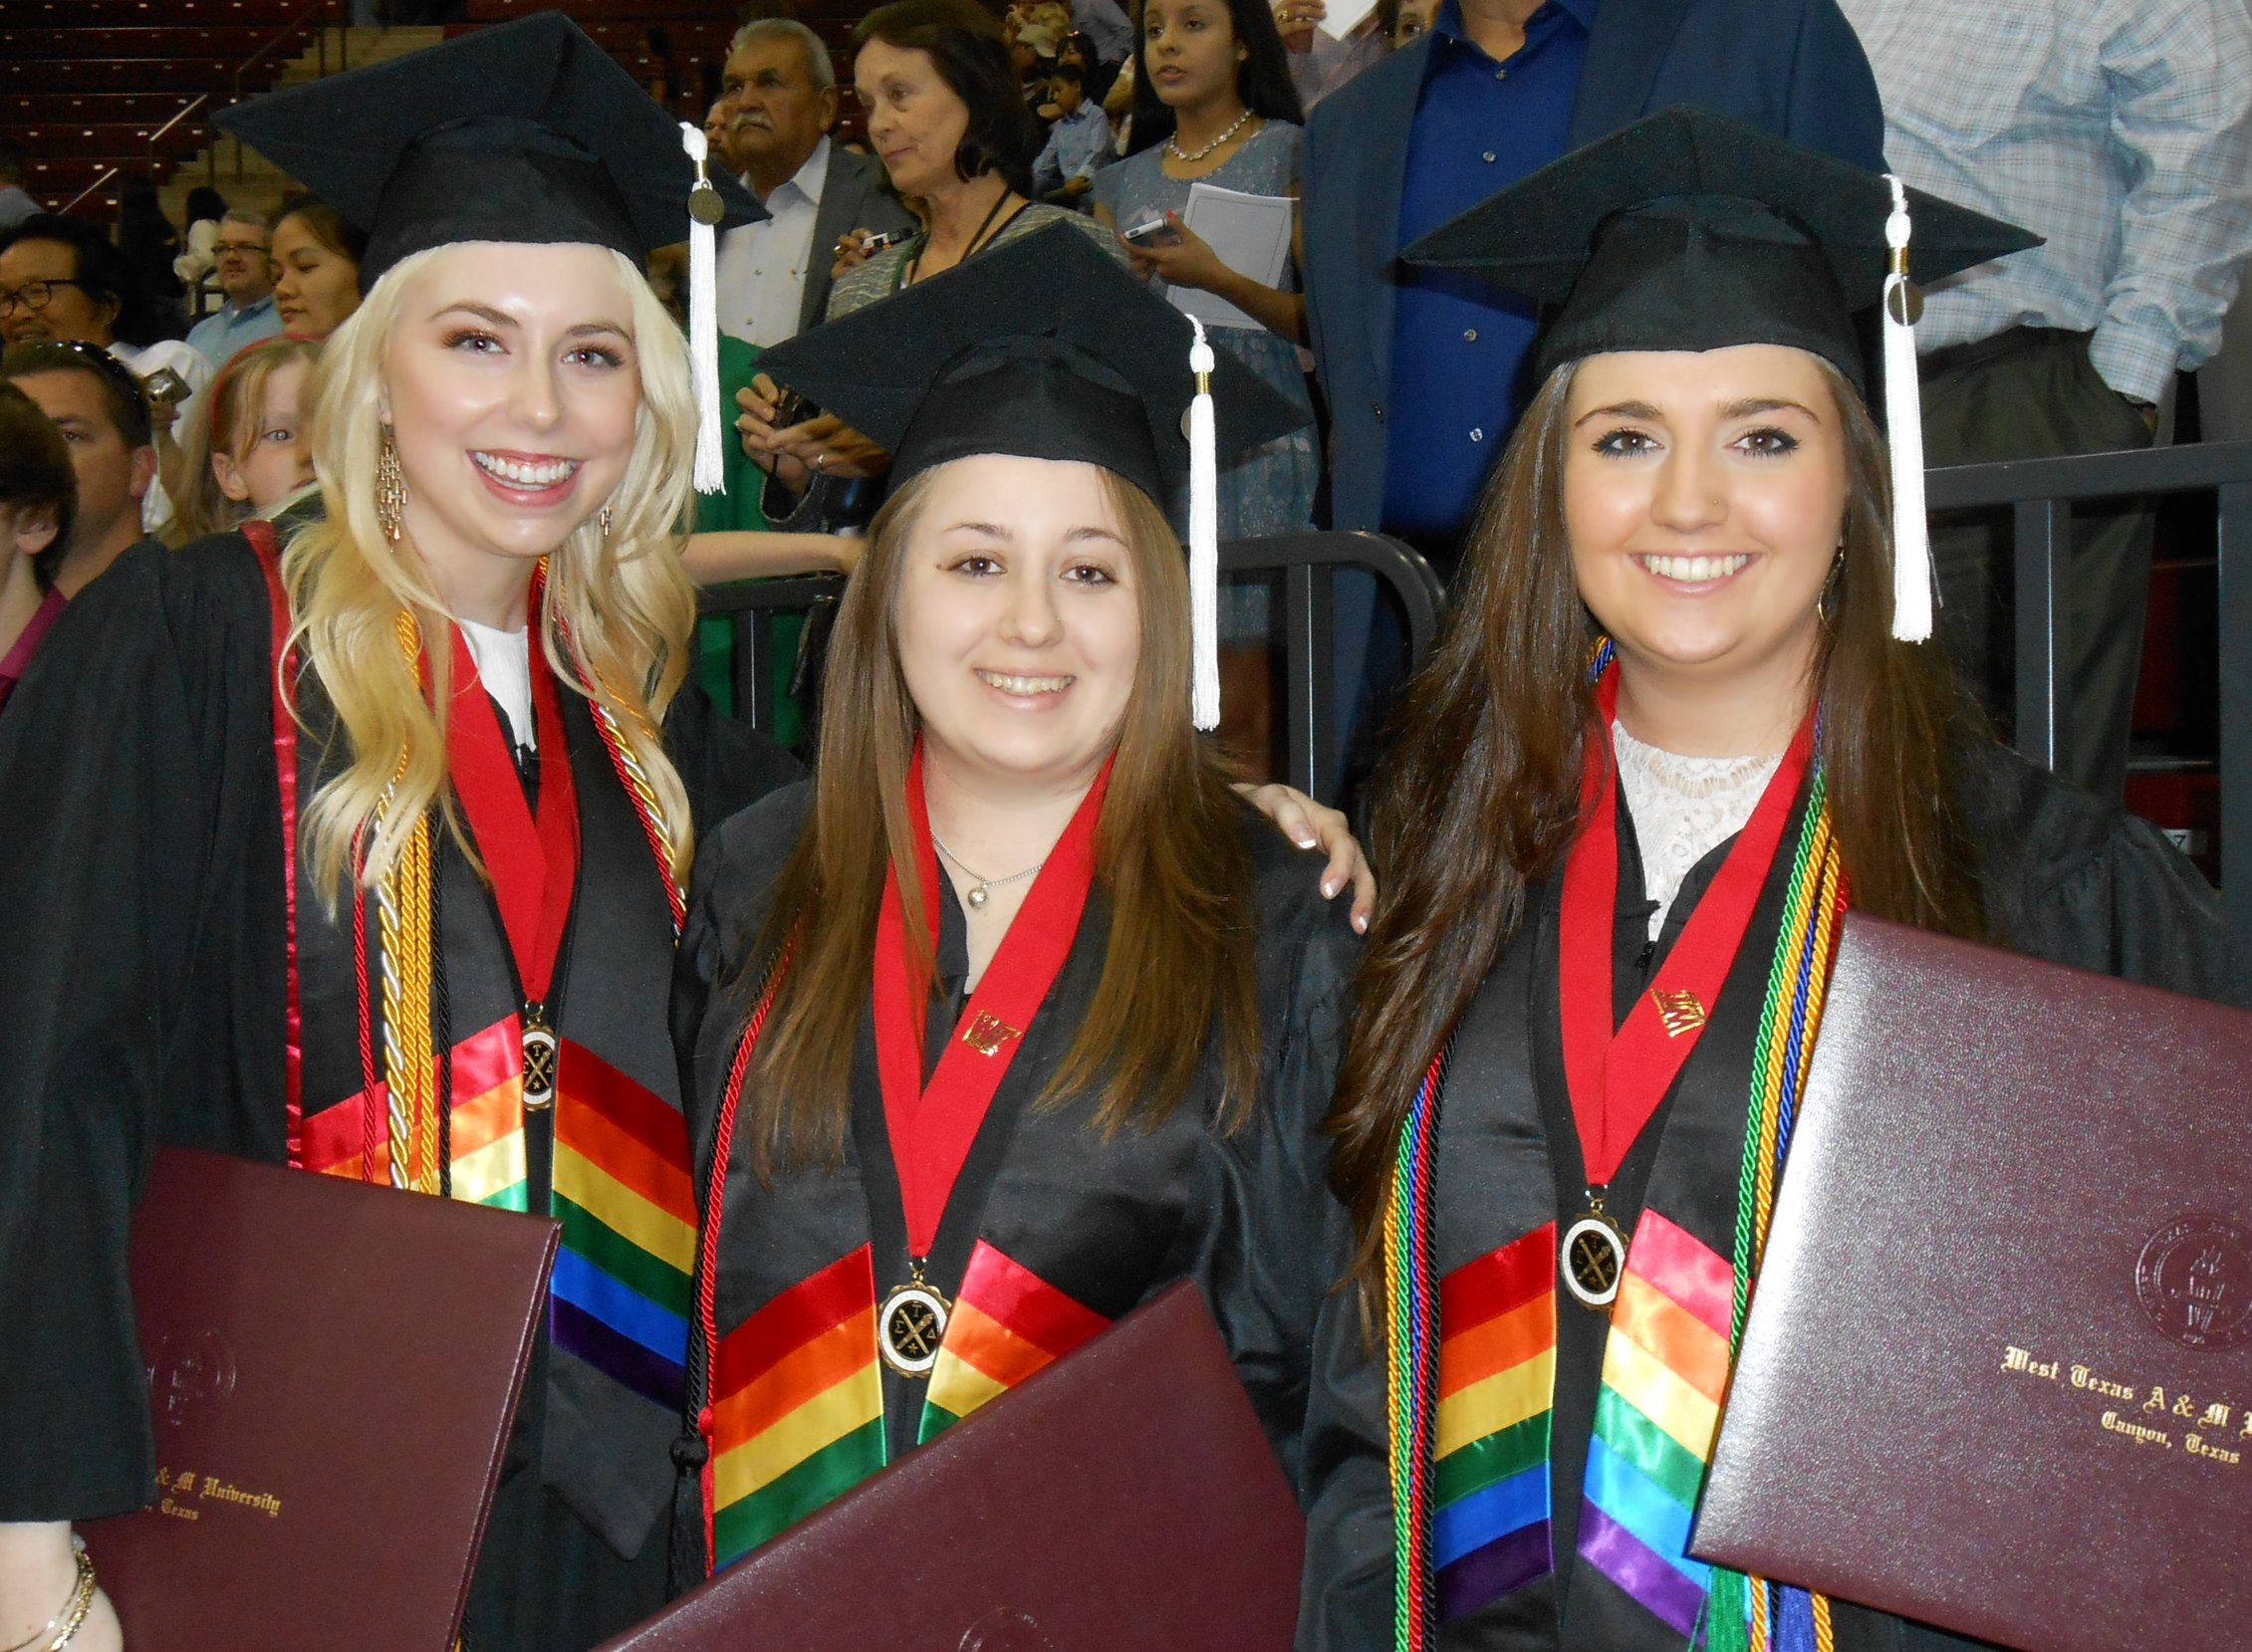 English student graduates wearing rainbow stoles, May 2015